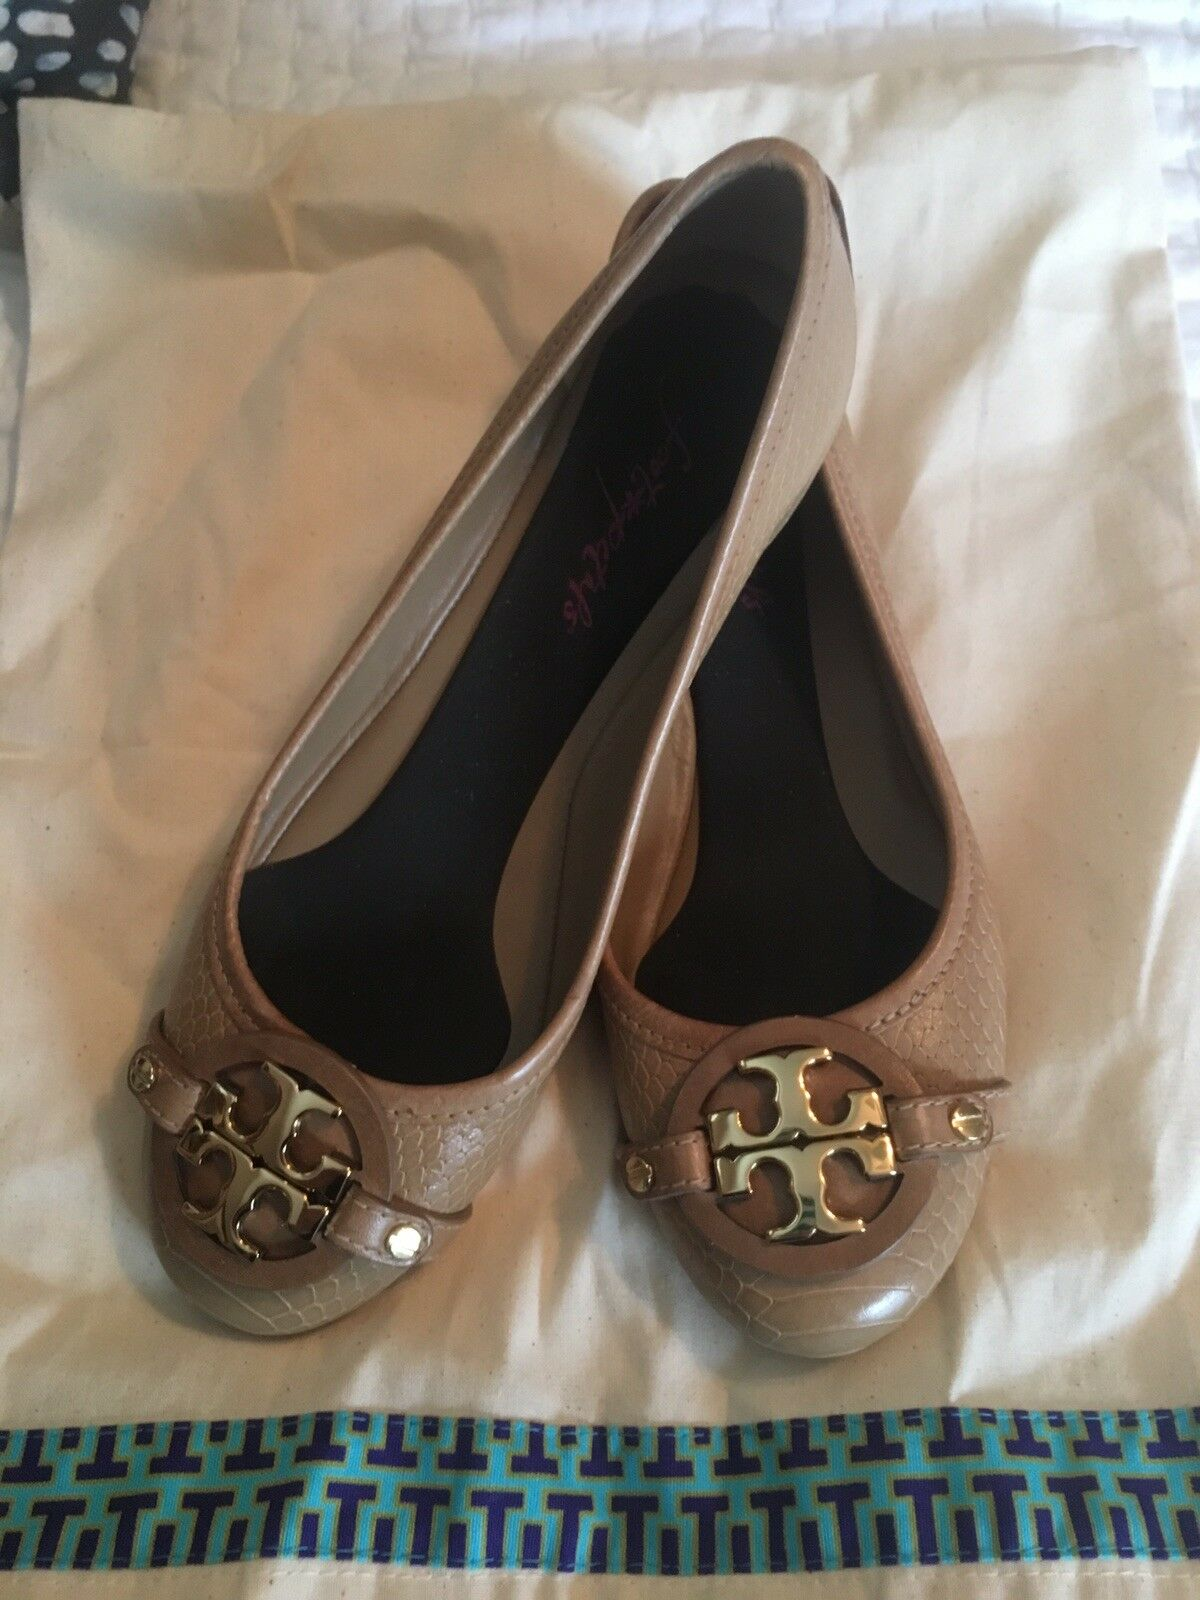 Tory Burch Reva Flats Textured Tan Leather Leather Leather Size 7.5 Preowned with Bag fc5116